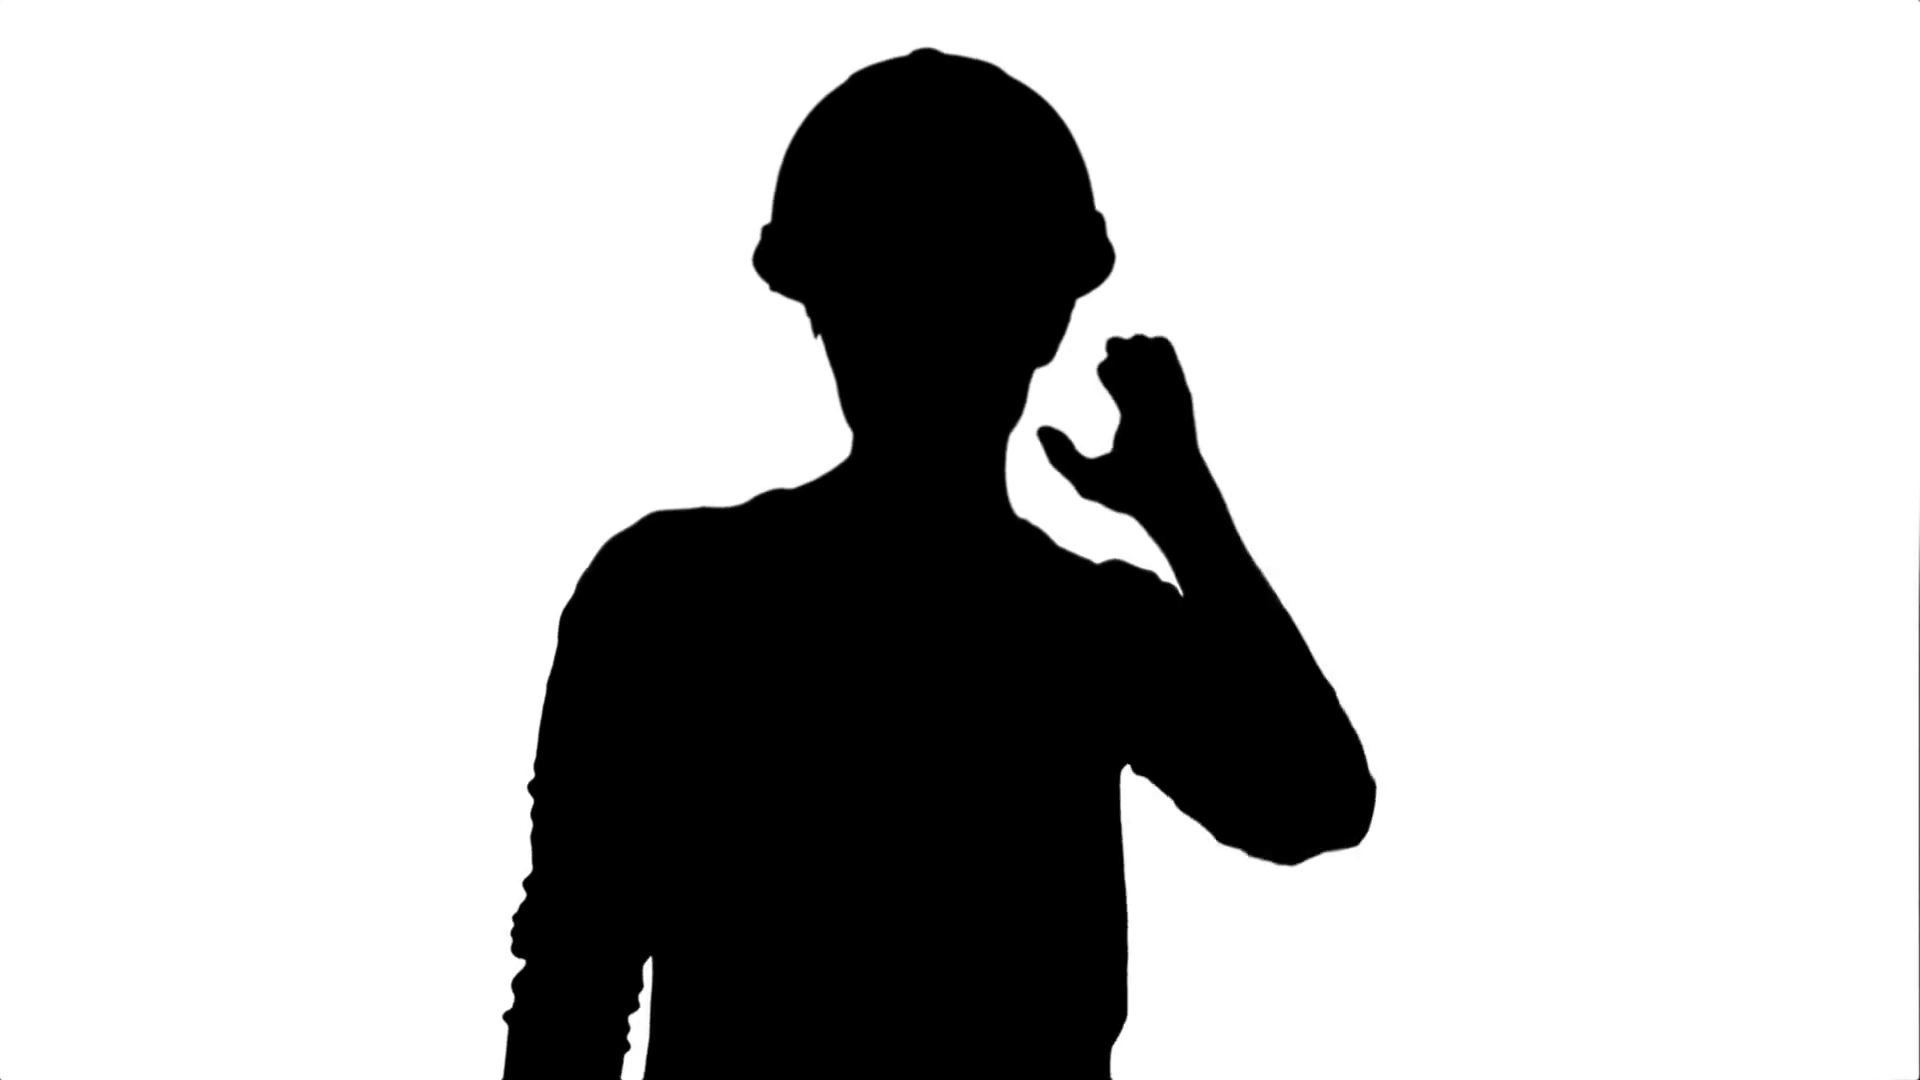 1920x1080 Silhouette Funny Dancing Construction Worker, Architect